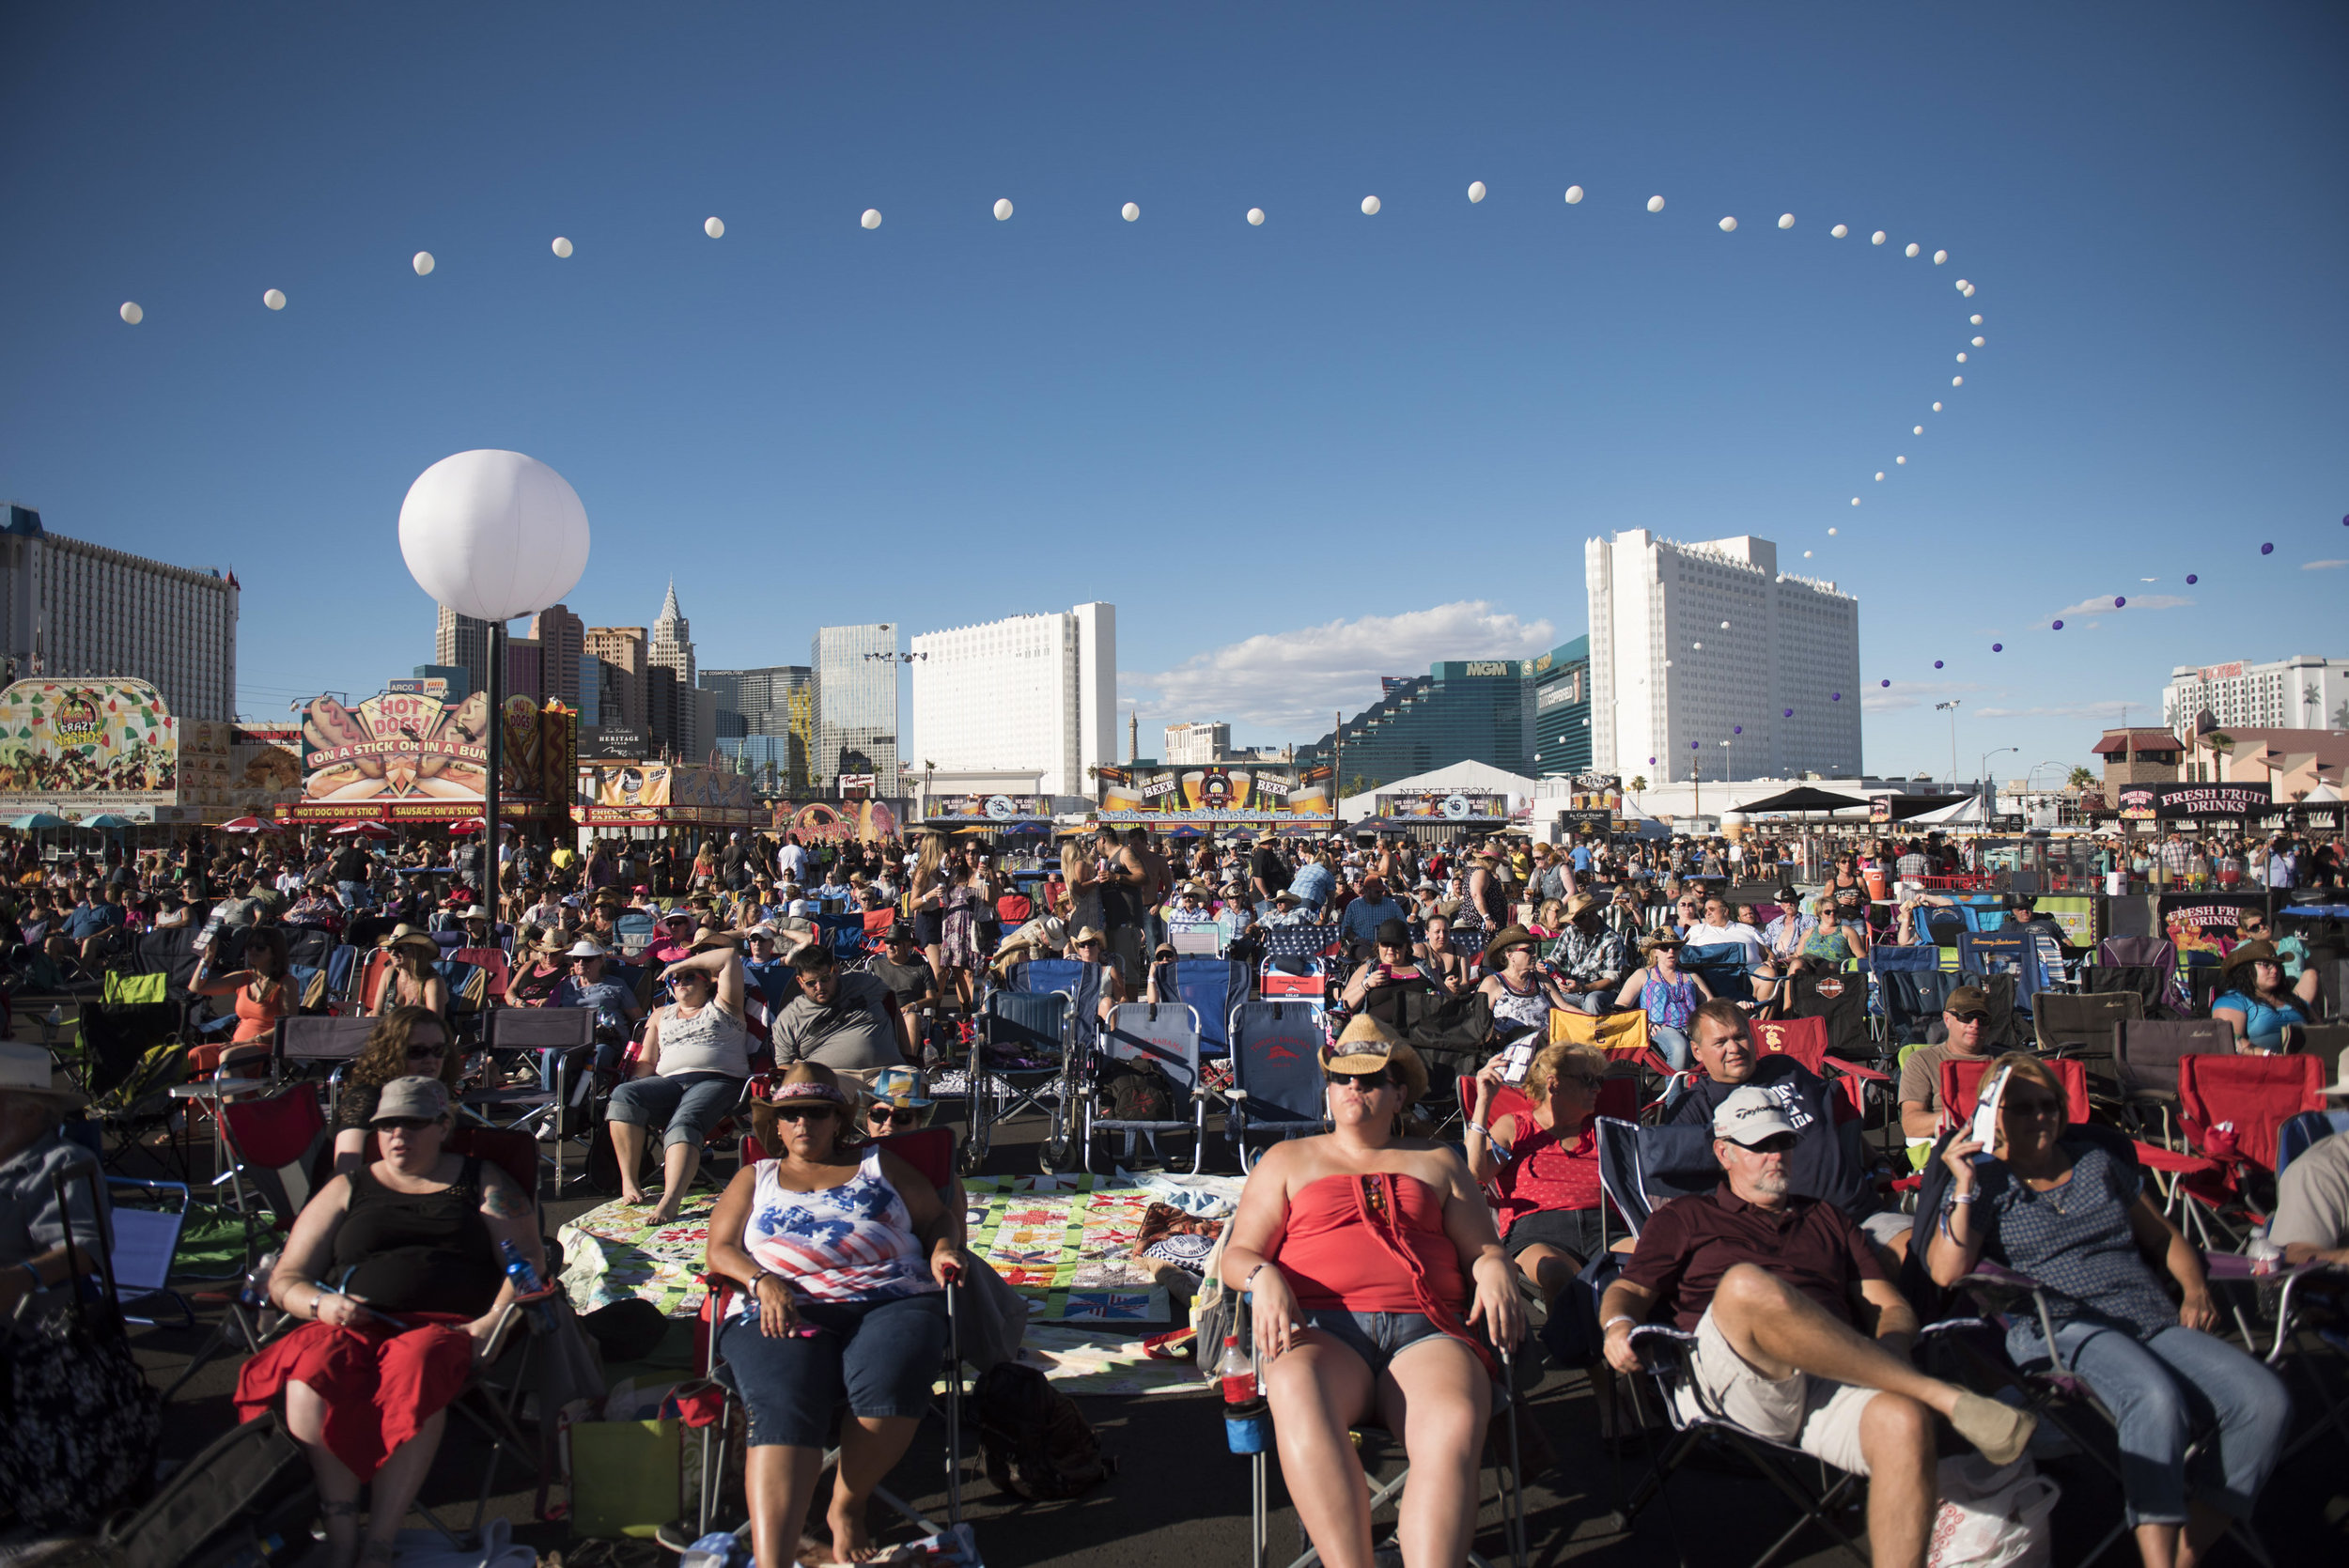 Concert goers enjoy live music at the Route 91 Harvest Country Music Festival.